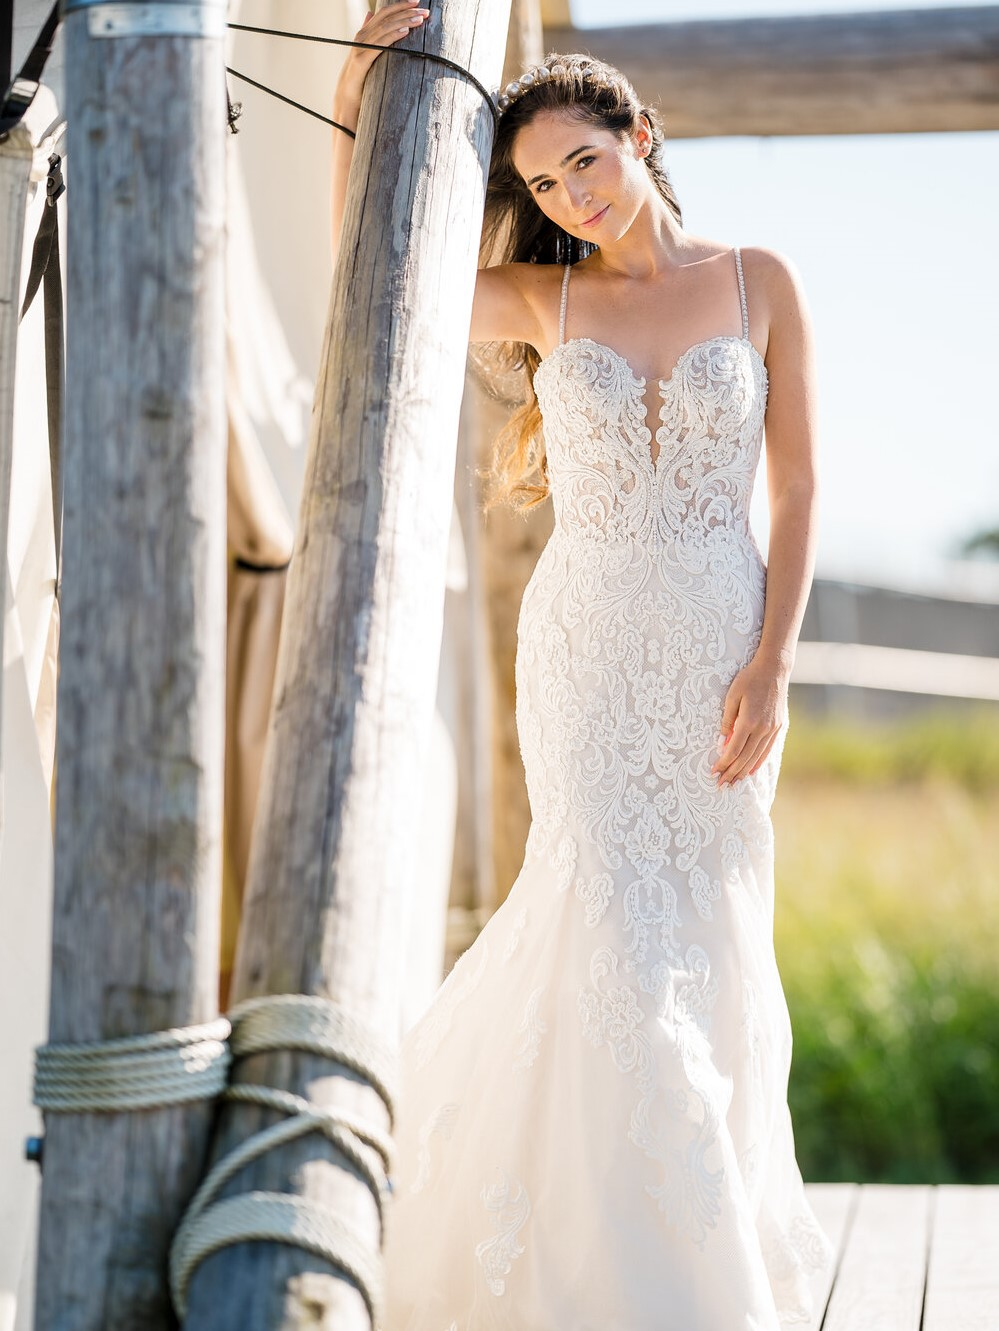 Influencer Wearing Lace Fit-and-Flare Wedding Gown Called Fiona by Maggie Sottero